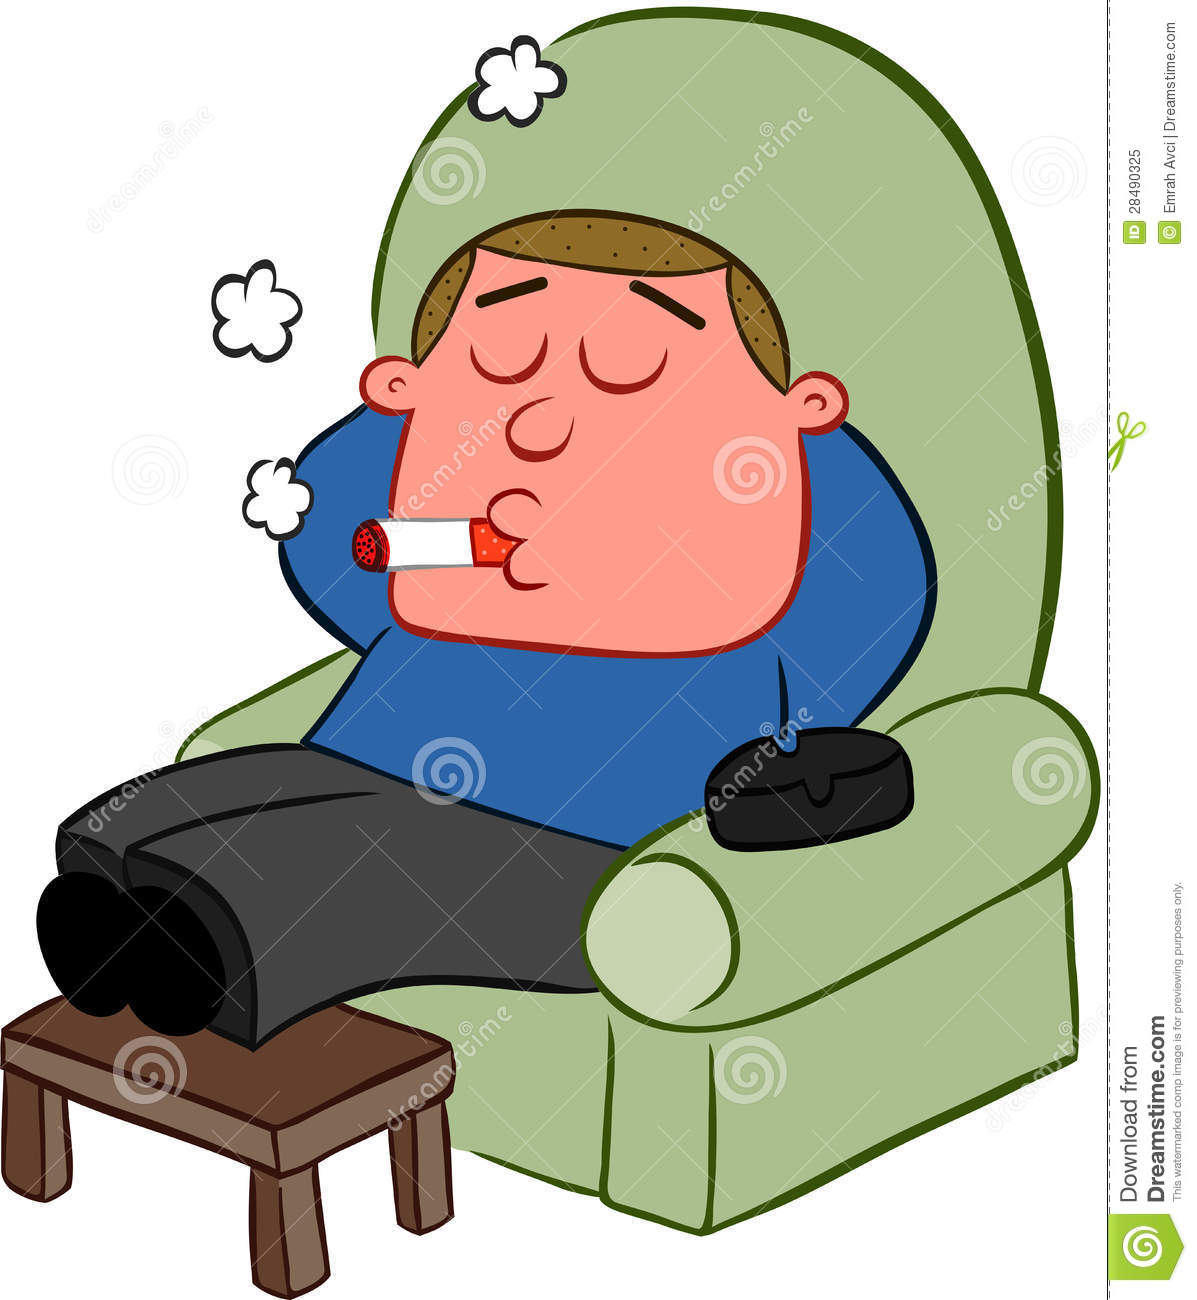 smoking man cartoon stock vector image of chair  agressive 28490325 relax clip art pool relax clip art pool